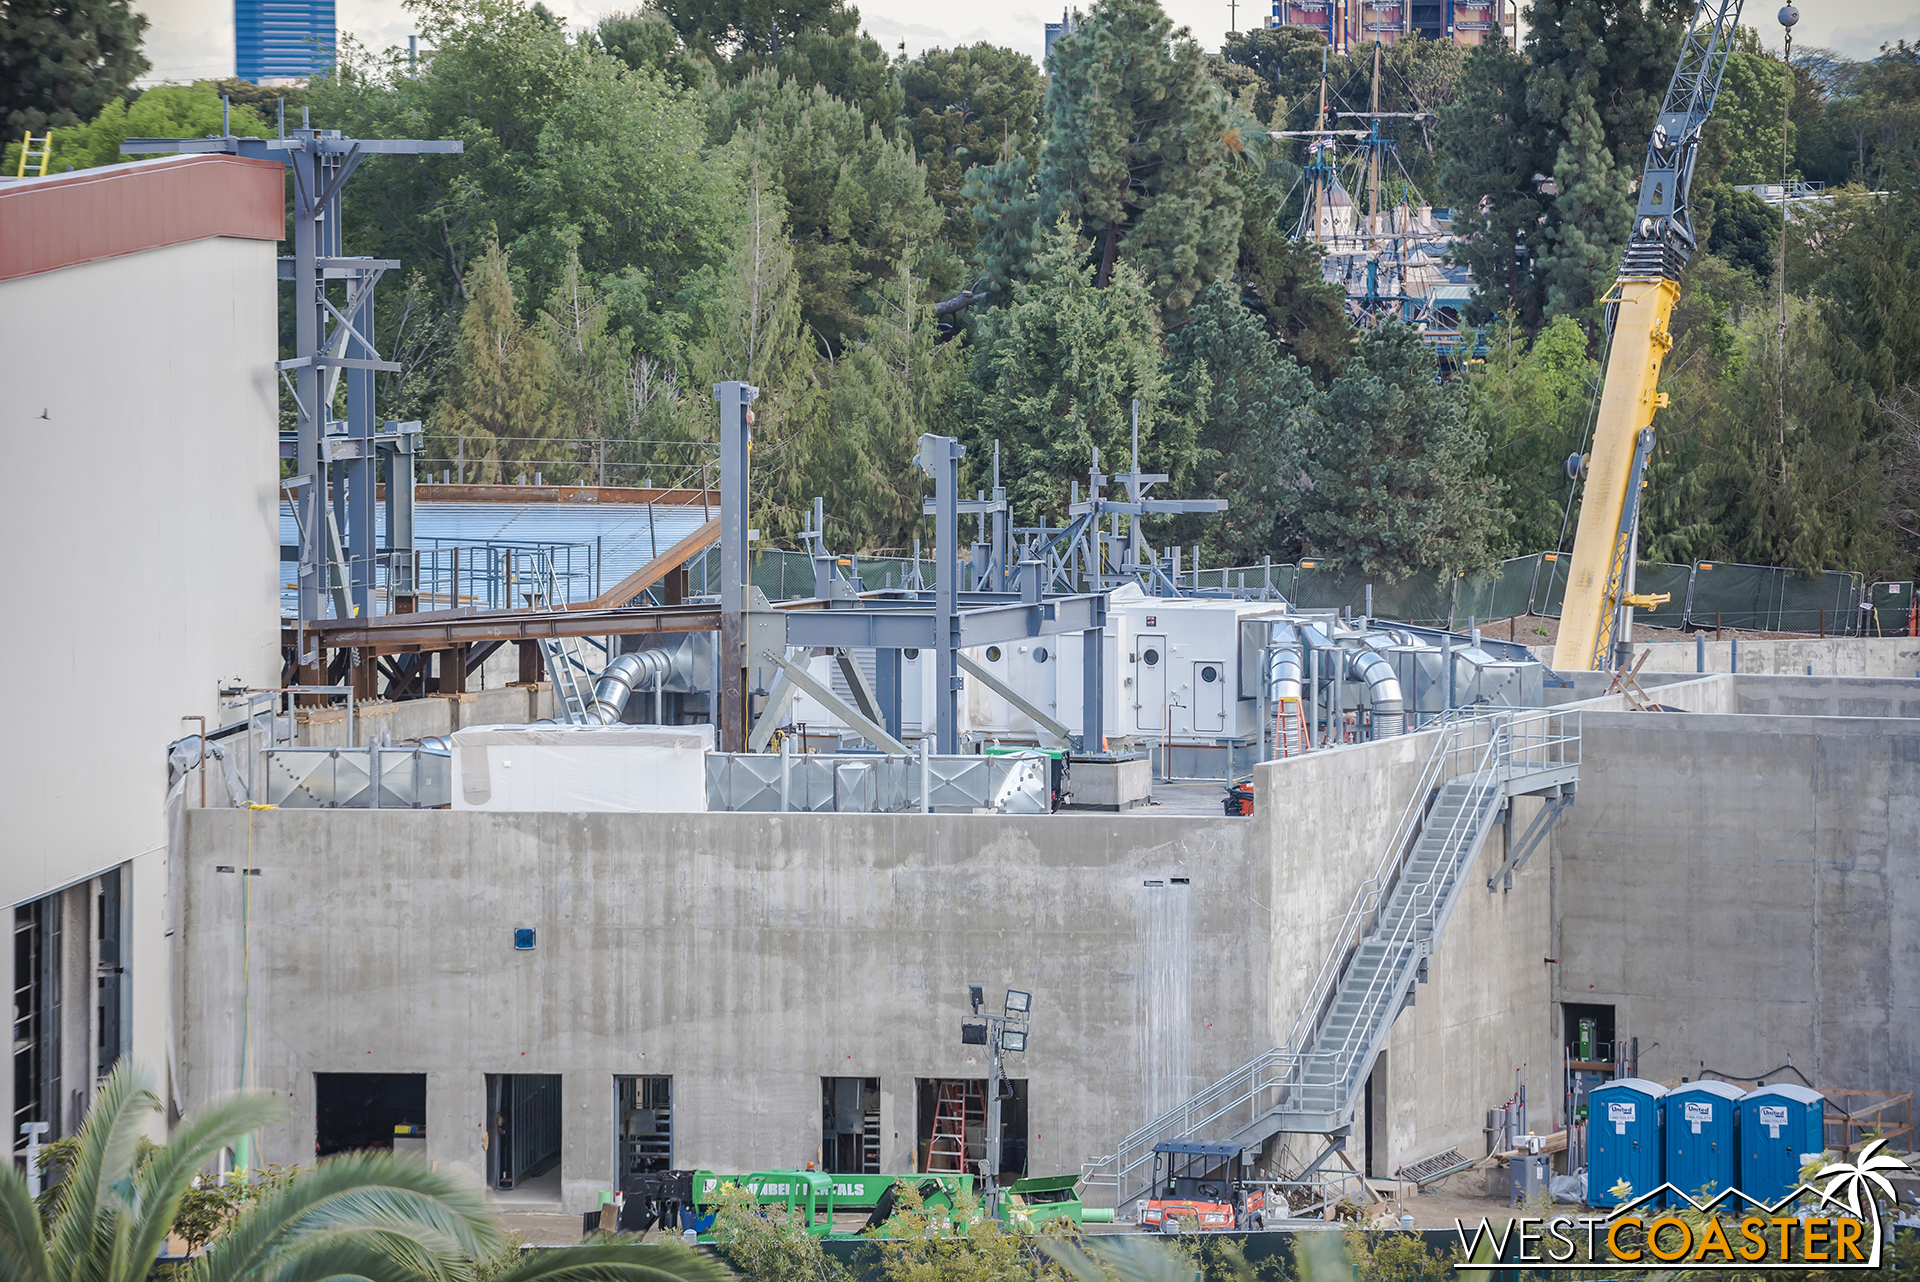 More steel is extending from the building as part of other structures!